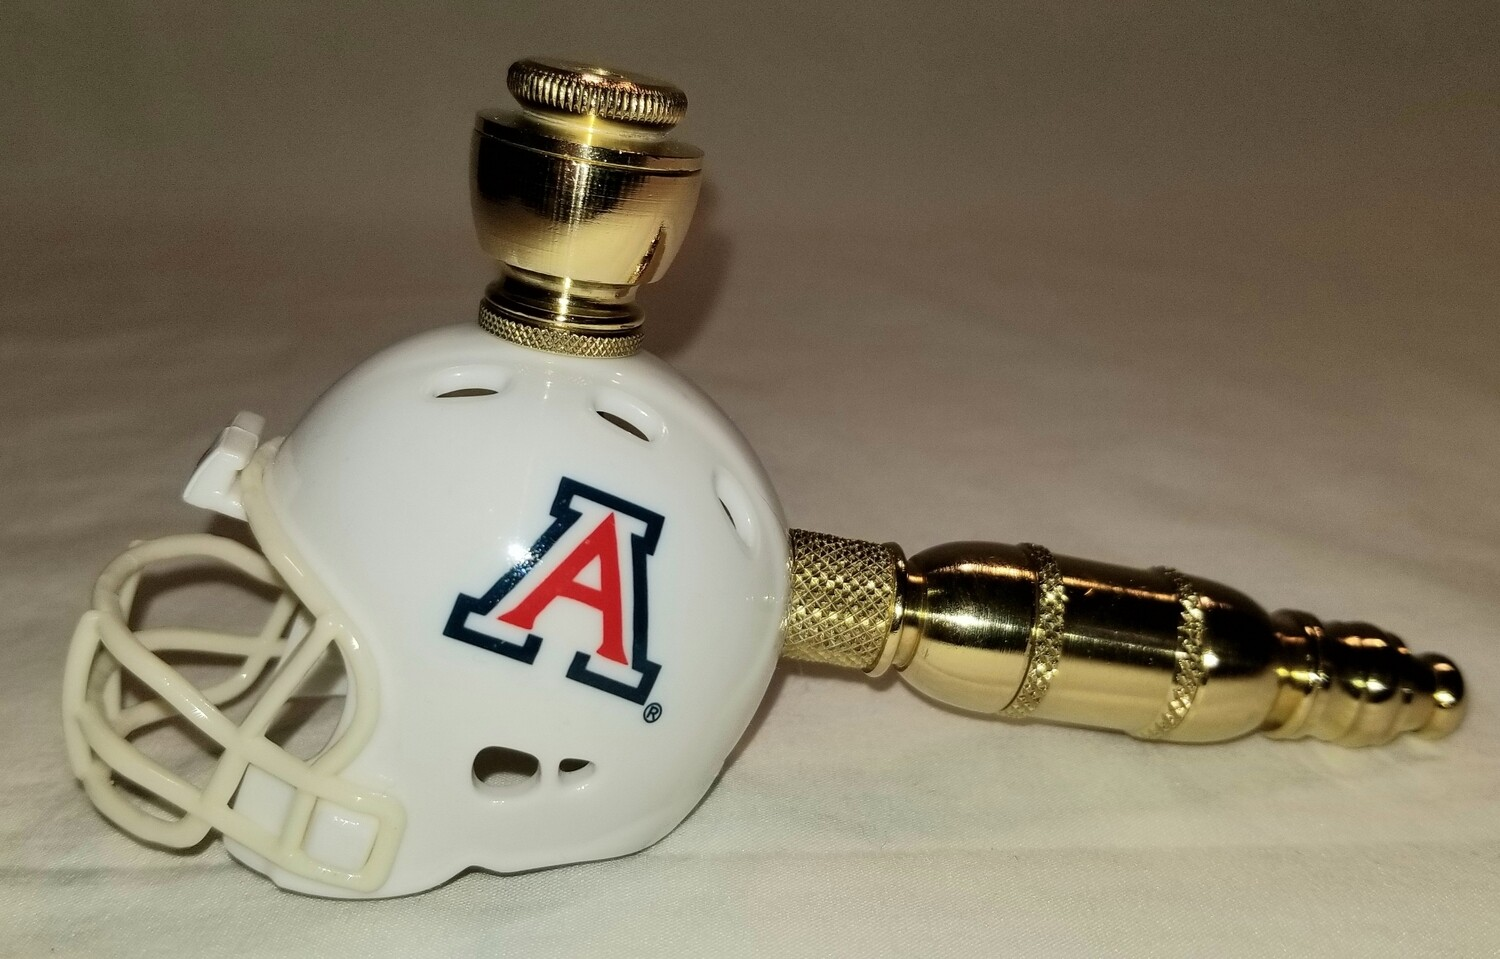 ARIZONA STATE WILDCATS FOOTBALL HELMET SMOKING PIPE Straight/Brass/White